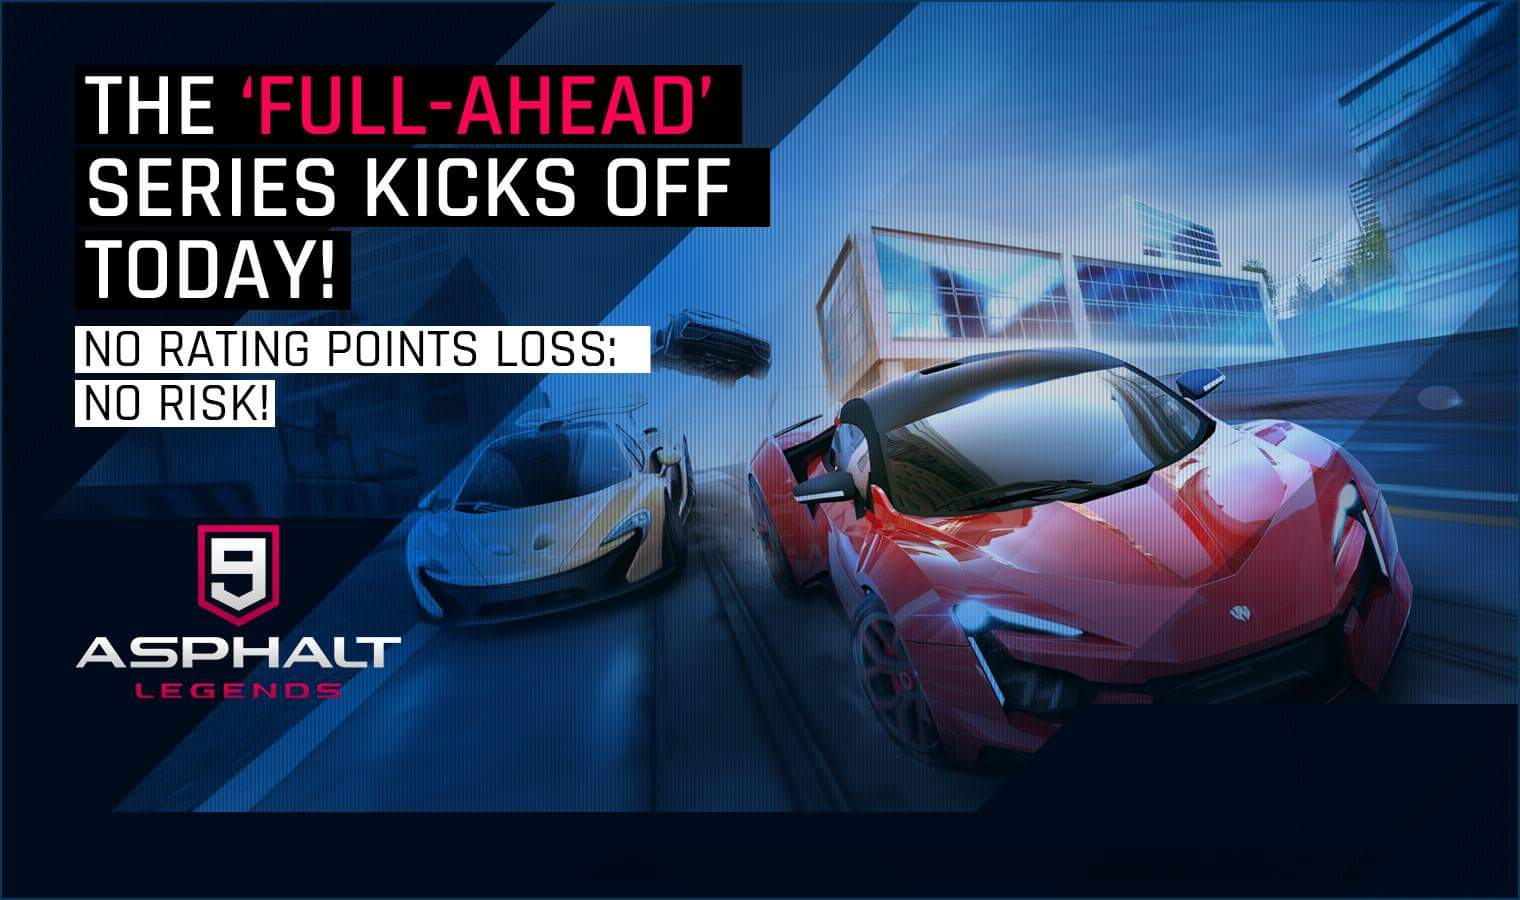 Download Asphalt 9: Legends New Multiplayer Upadate, , Asphalt 9, Asphalt 9: Legends